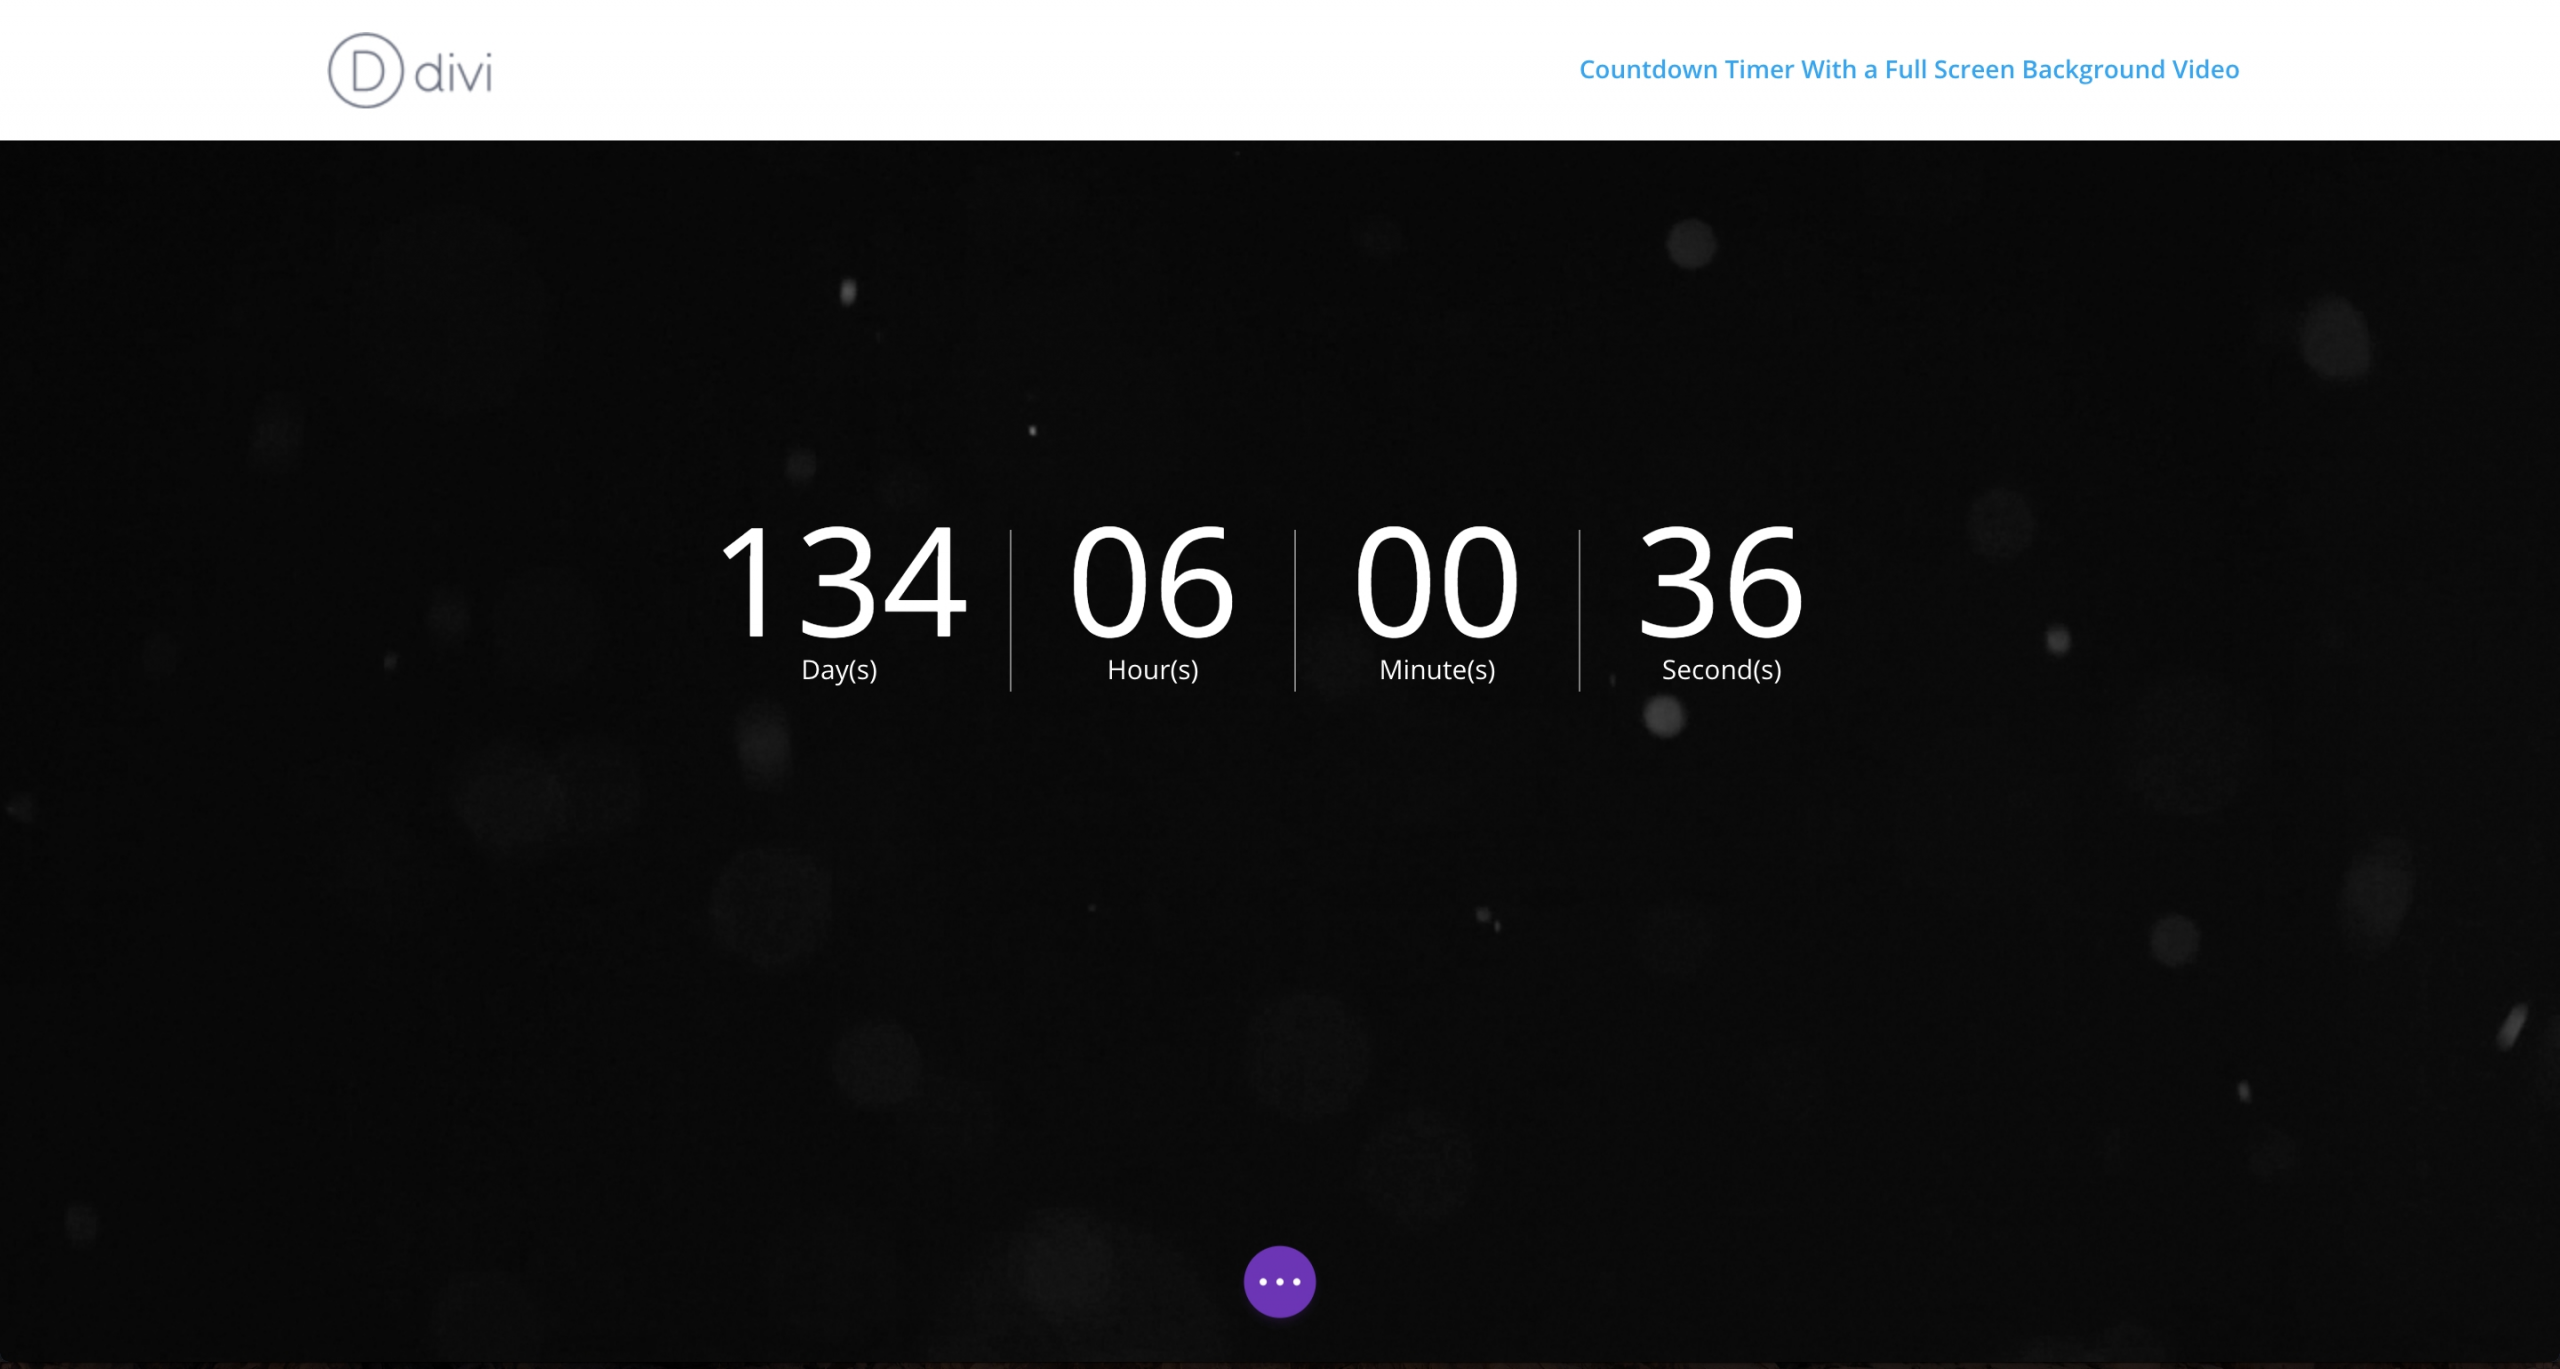 how to create a countdown timer with a full screen